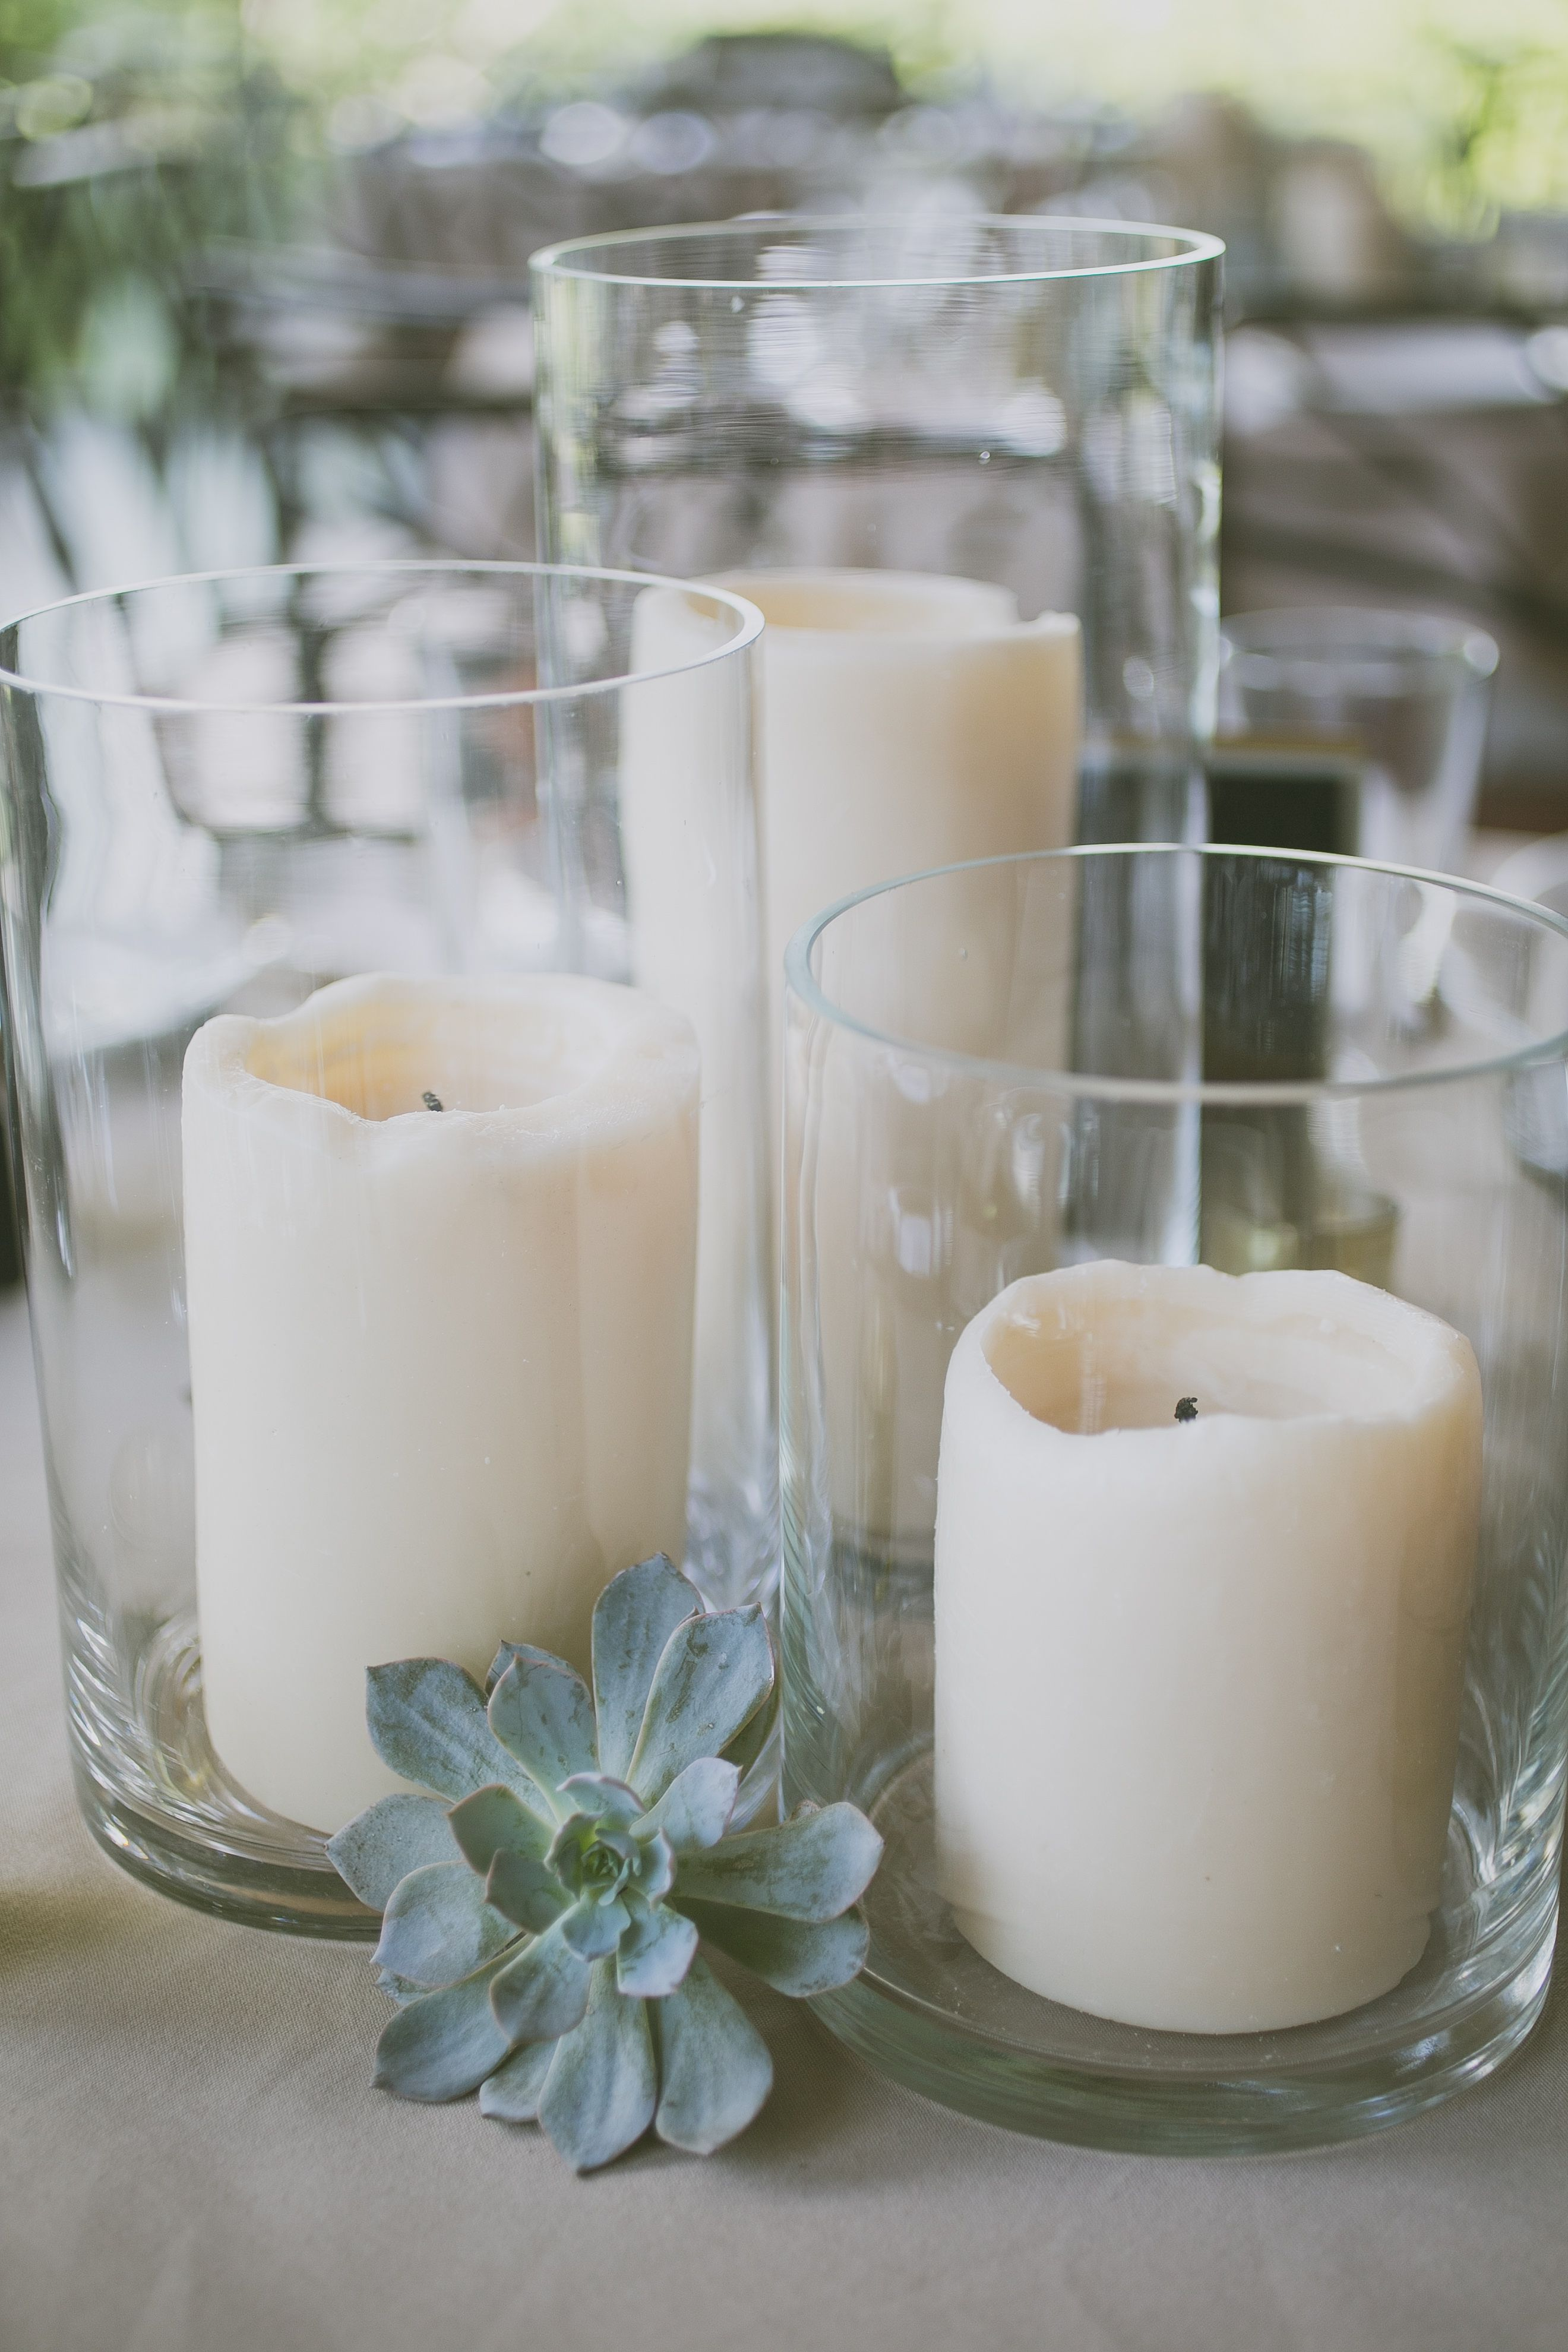 A trio of led pillar candles in vases with pale green